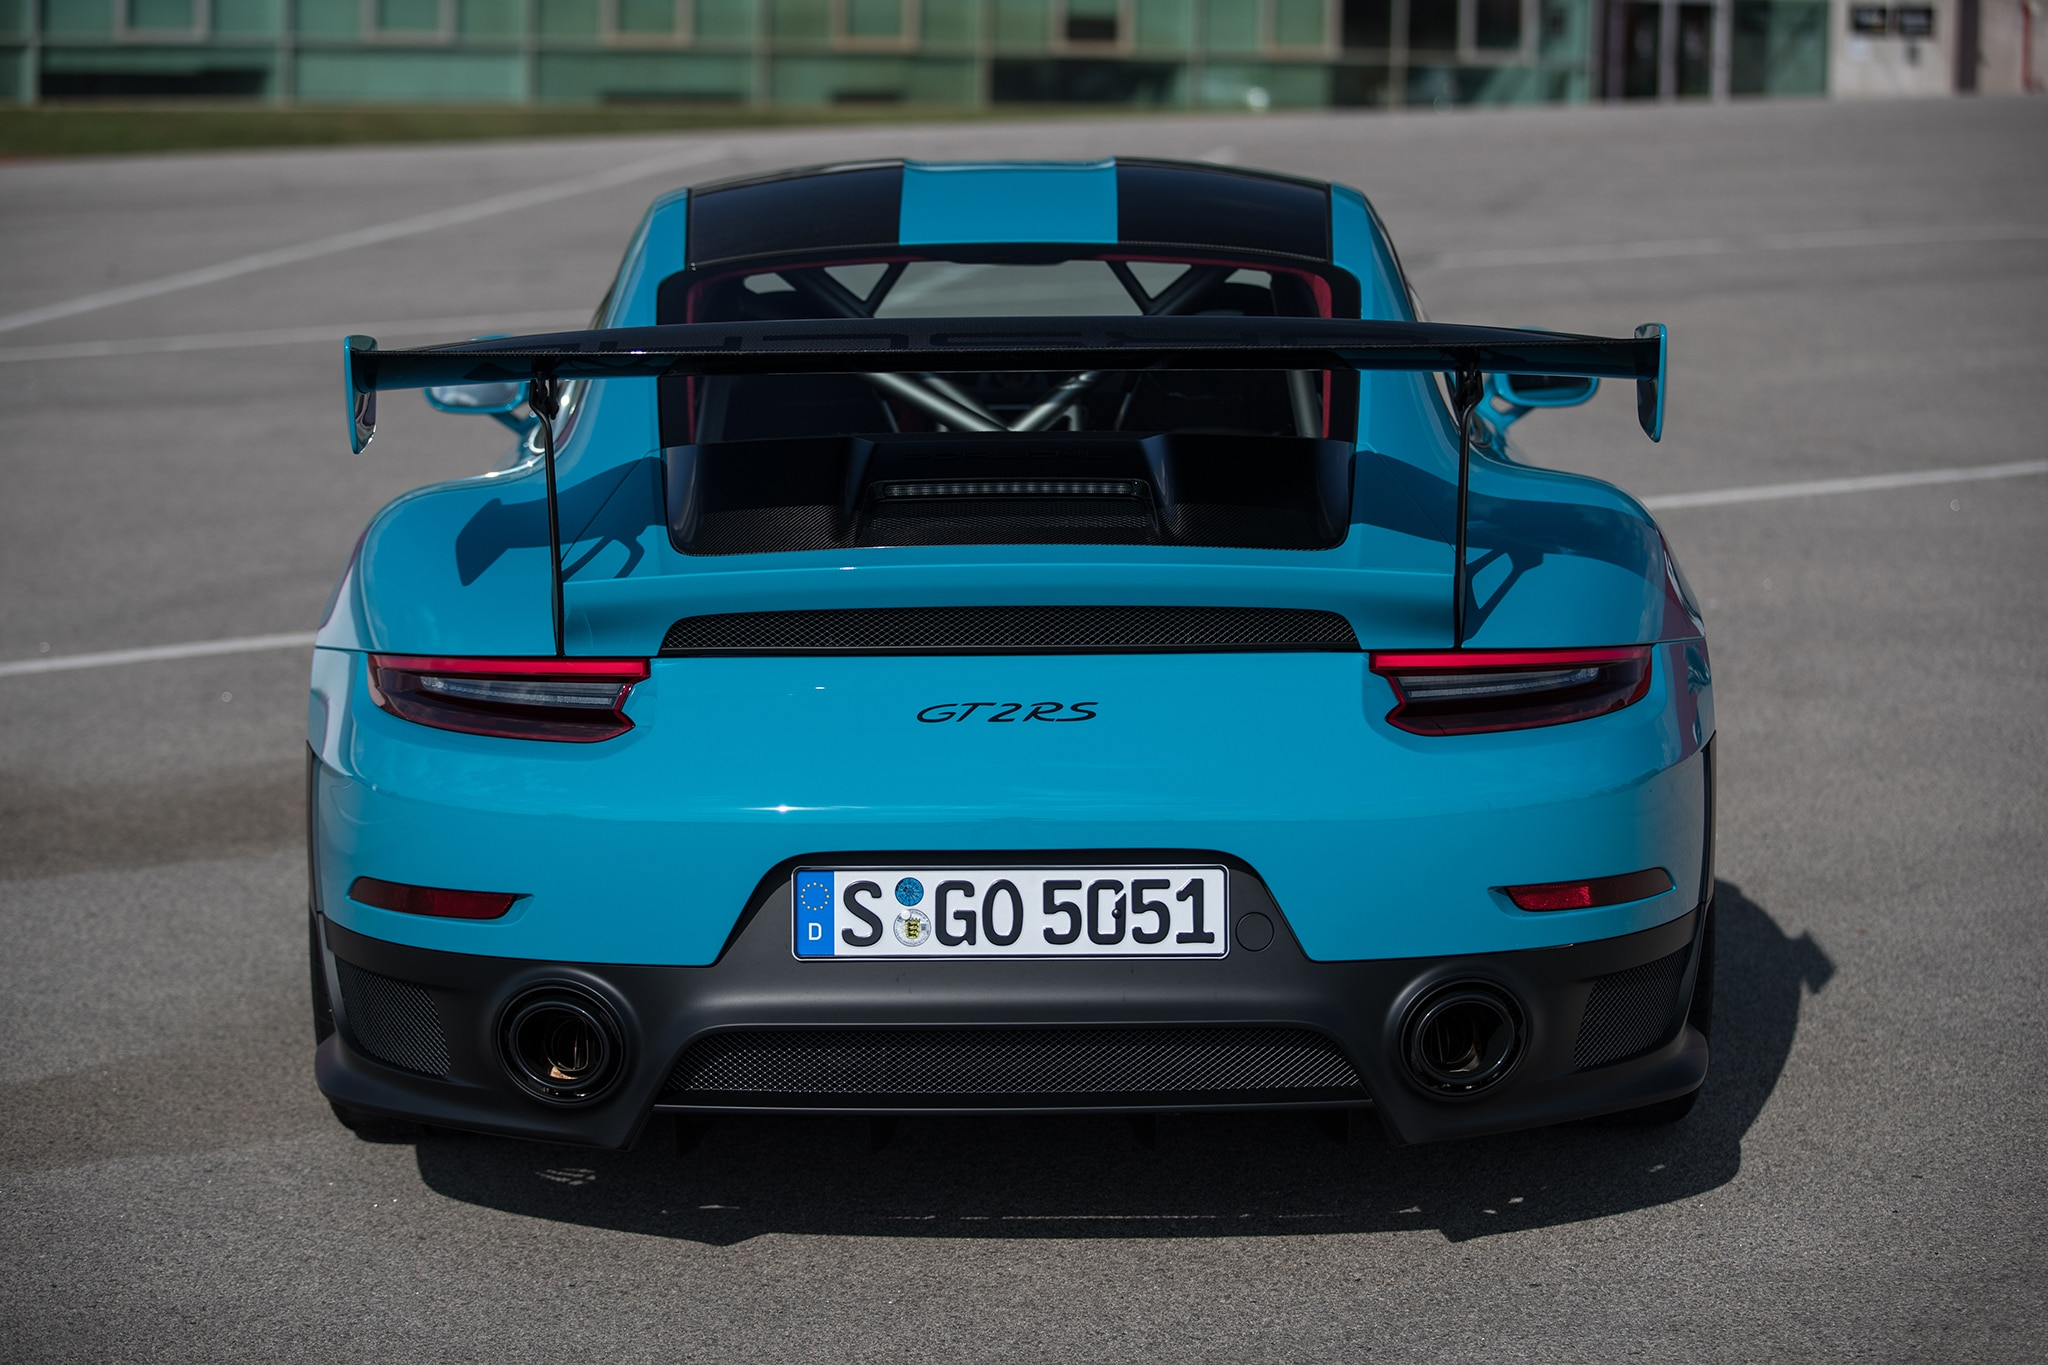 2018-Porsche-911-GT2-RS-rear-04 Extraordinary Porsche 911 Gt2 Rs Used Cars Trend